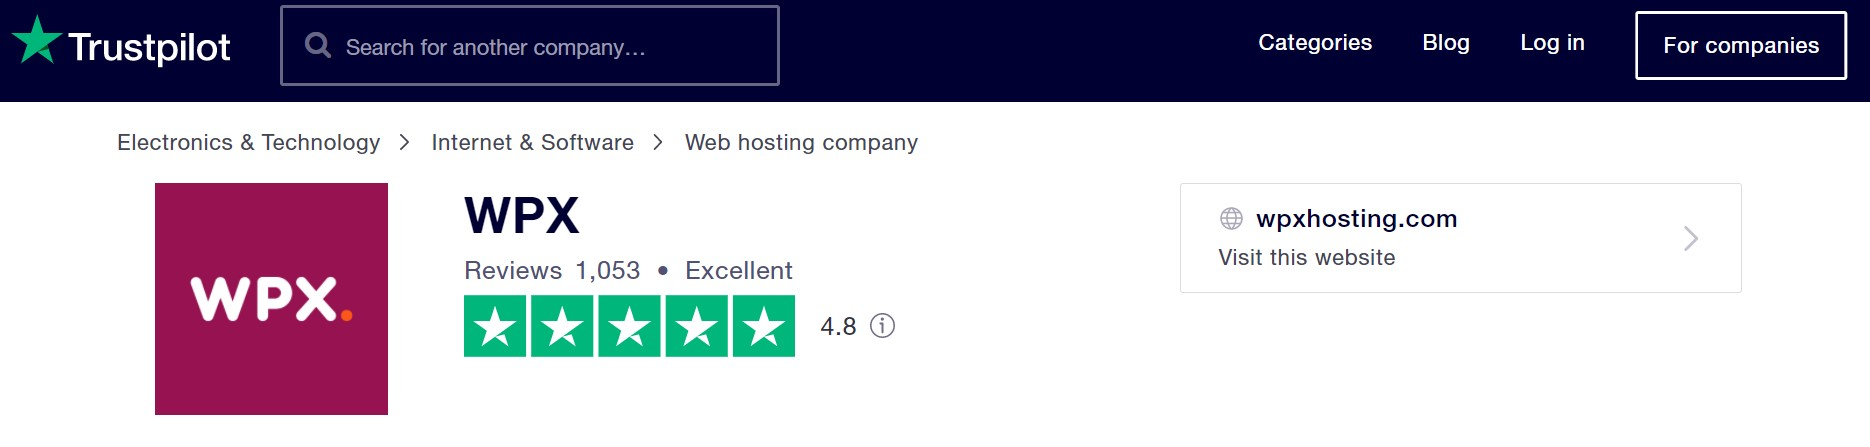 The WPX listing on Trustpilot